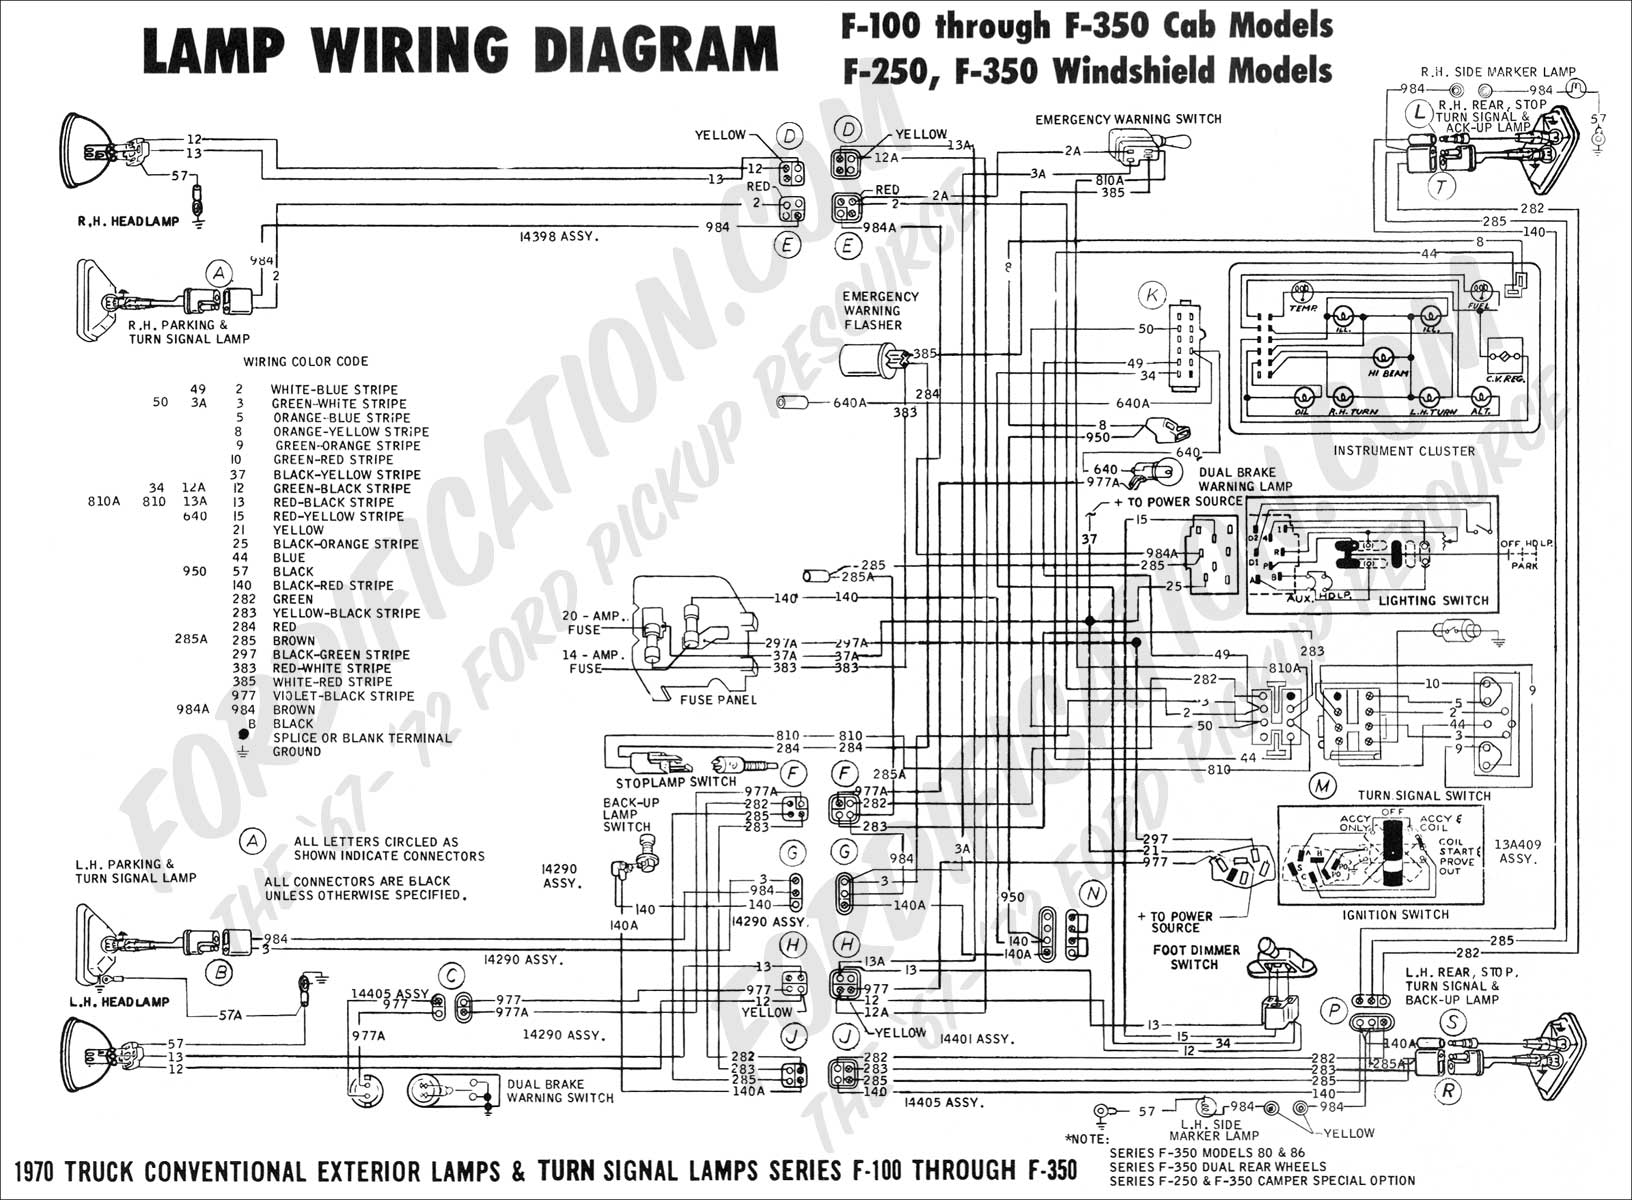 Ford F 150 Wiring Diagram Likewise 2004 Ford F 150 Tail Light Wiring further Australian Wiring Diagram Symbols 3873593 Orig   Wiring Diagram in addition Oil Pressure Sending Unit Location 90996 together with 8100 harness furthermore 7 Roundplug 0 Wire Diagrams Easy Simple Detail 7 Way Round Trailer Wiring Diagram. on trailer 7 way plug wiring diagram